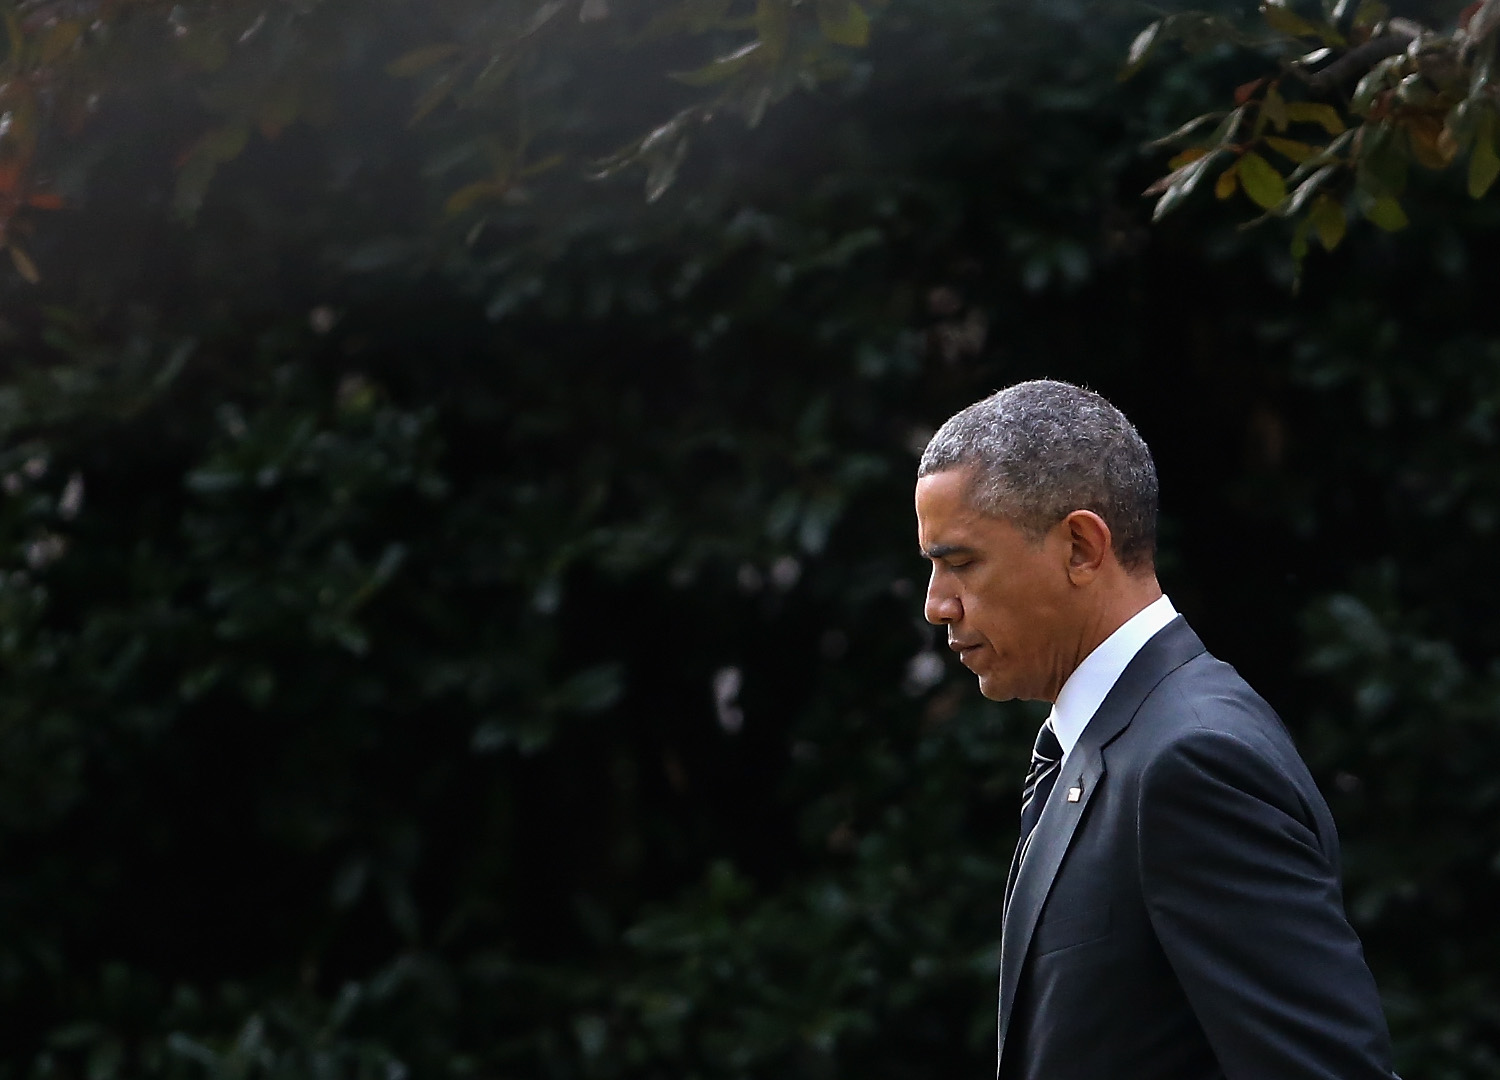 President Barack Obama walks toward Marine One while departing the White House on Nov. 25, 2014 in Washington, DC.